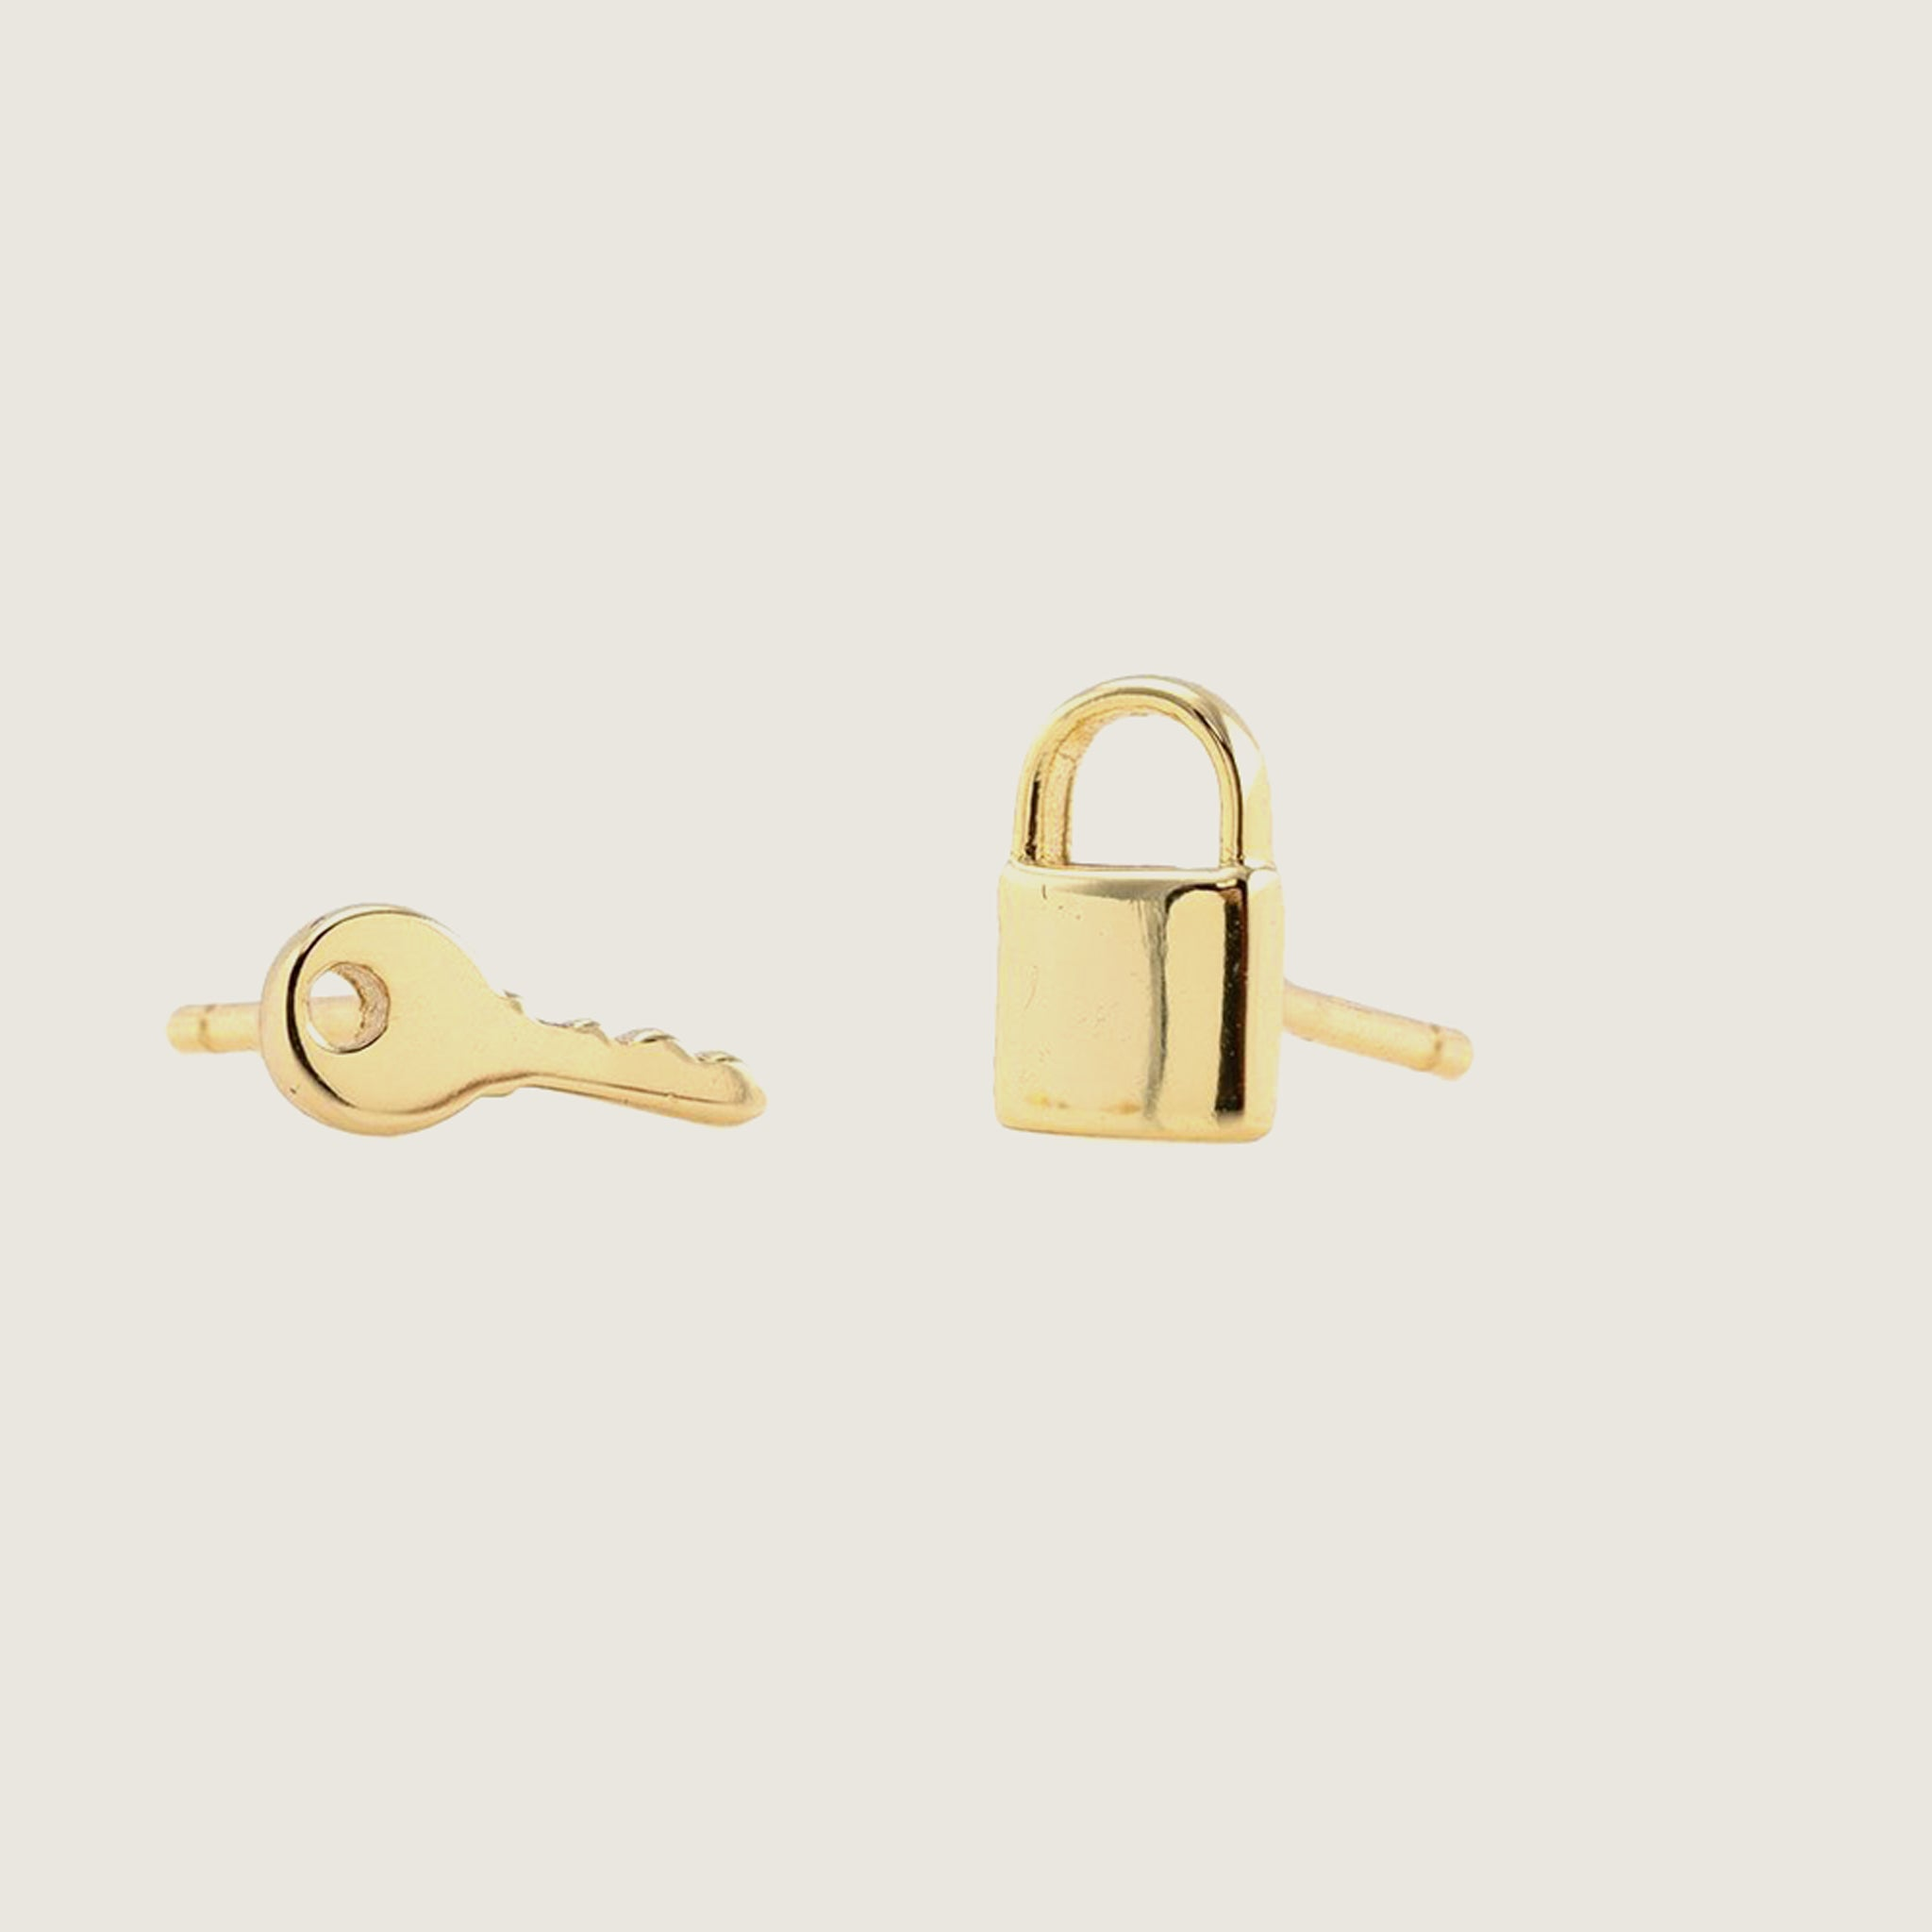 Lock & Key Stud Earrings - Blackbird General Store